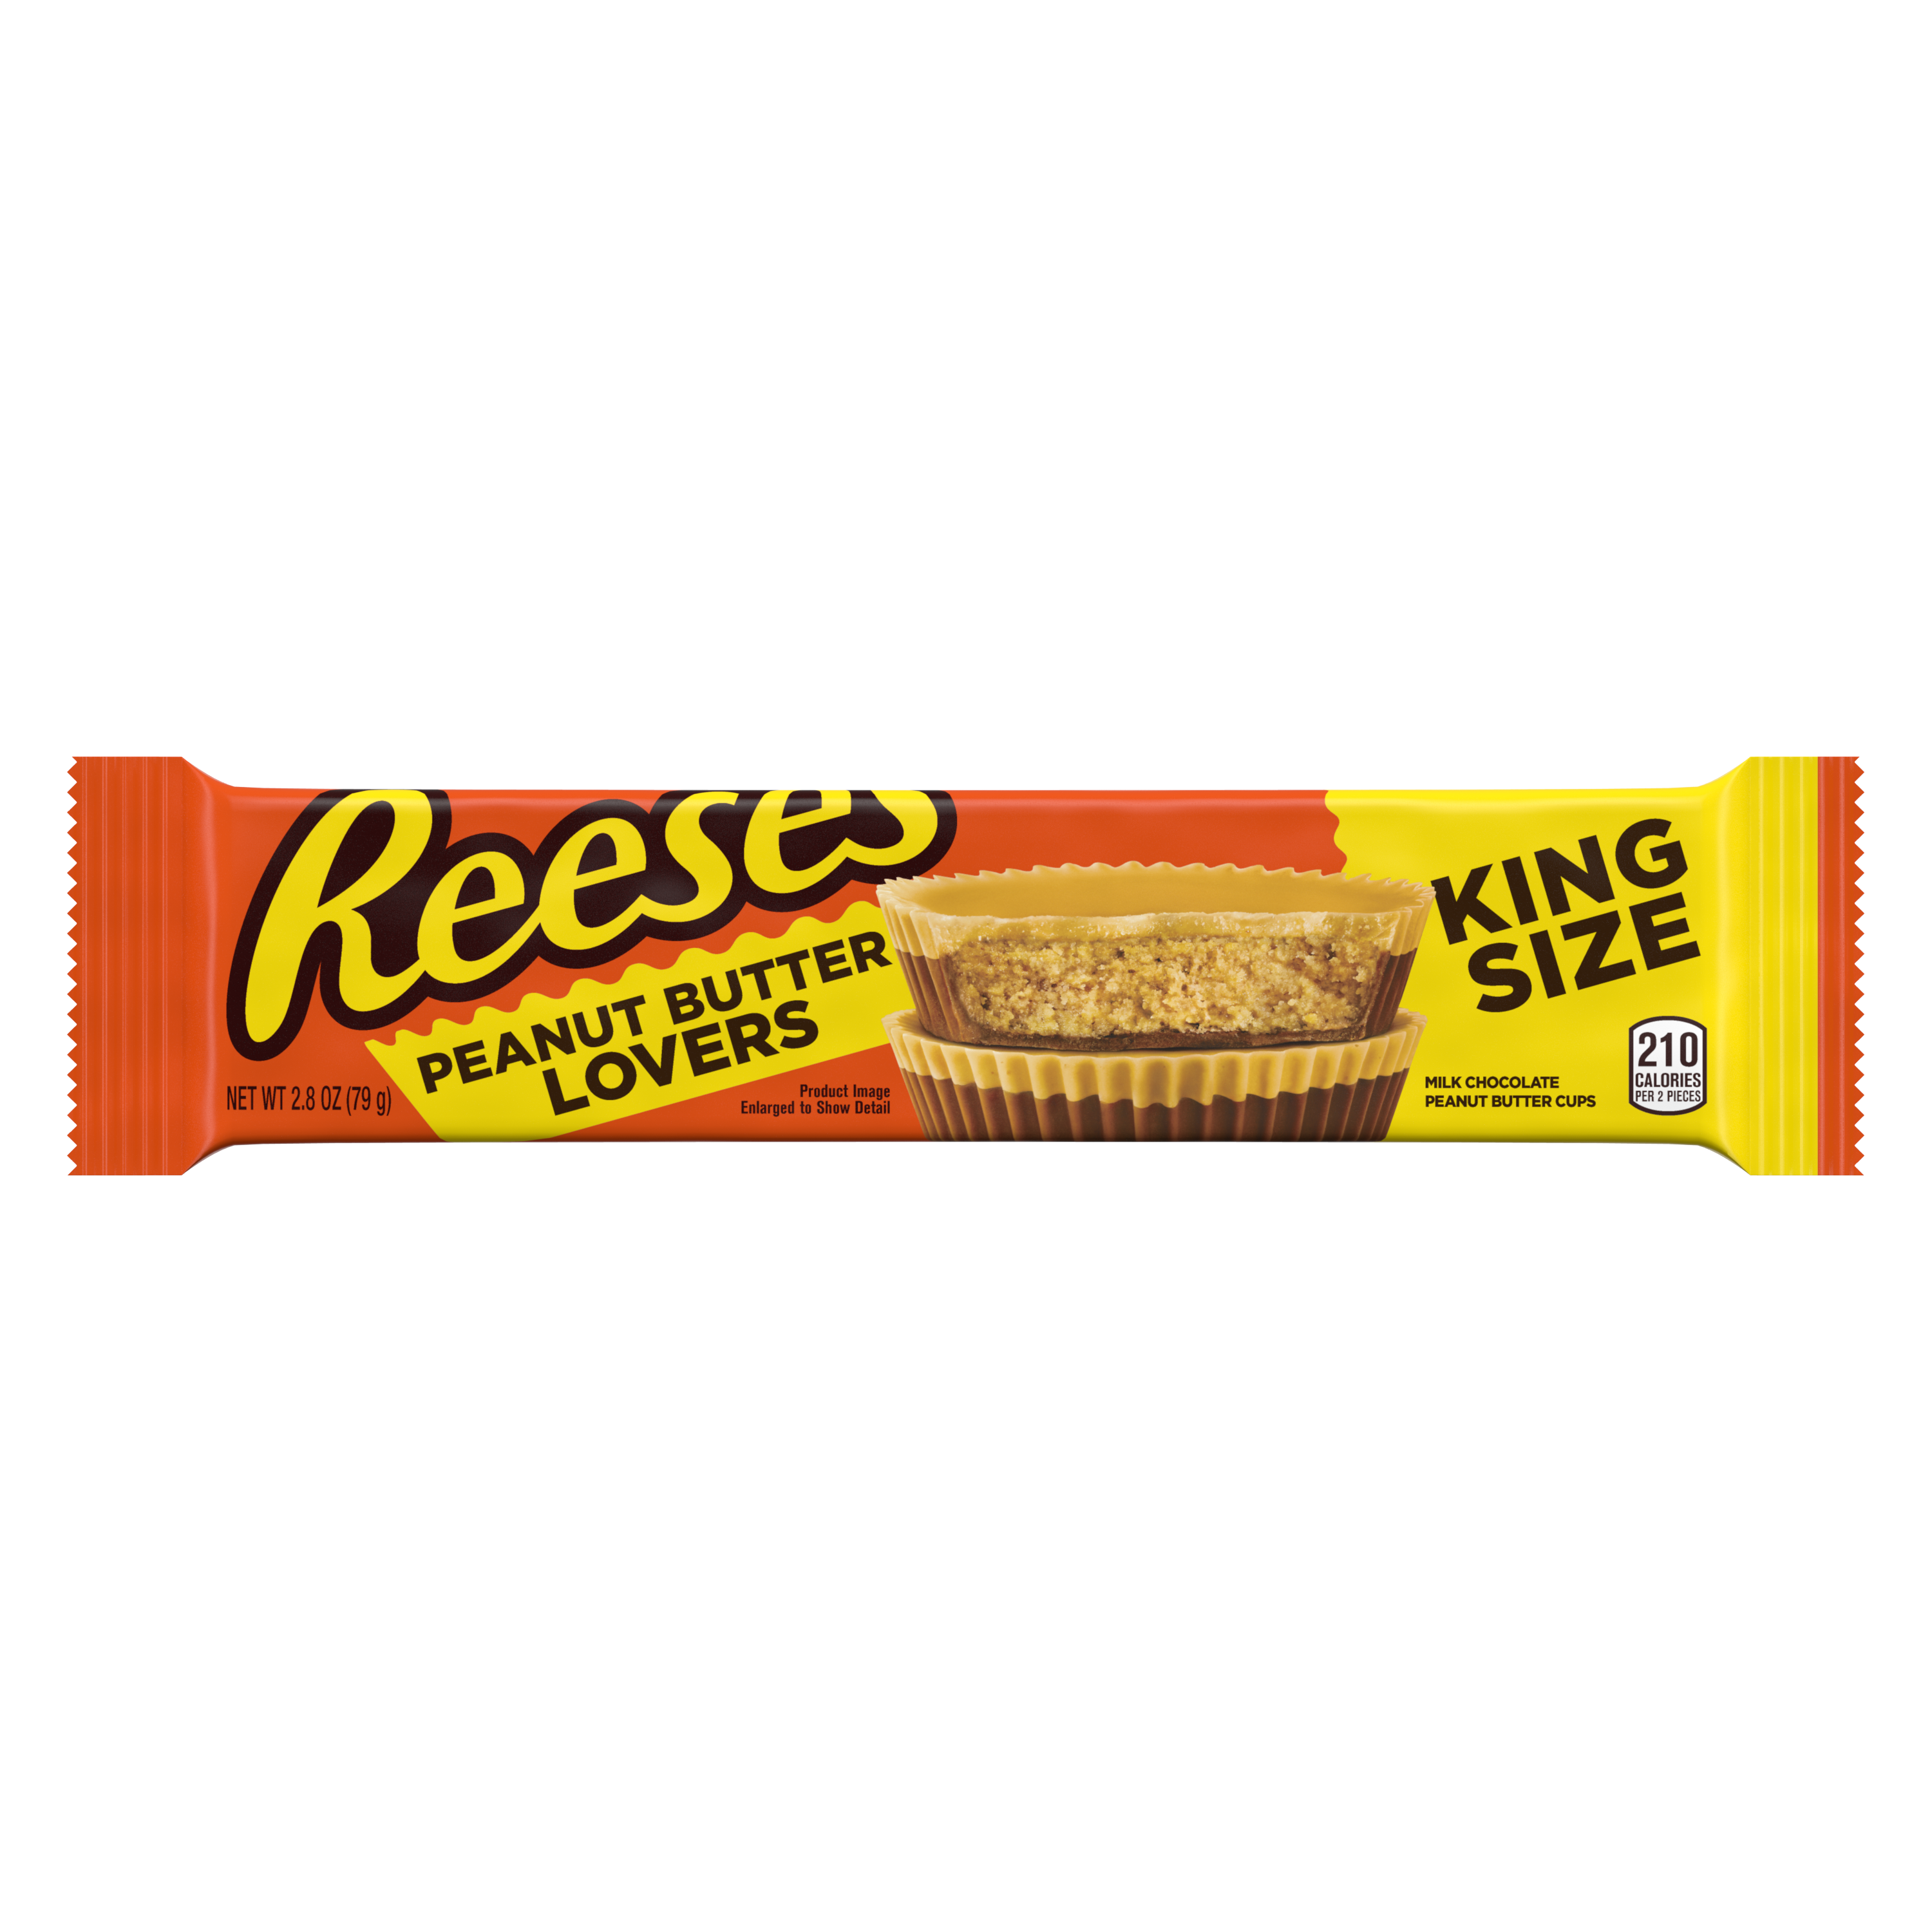 REESE'S Peanut Butter Lovers Milk Chocolate King Size Peanut Butter Cups, 2.8 oz - Front of Package